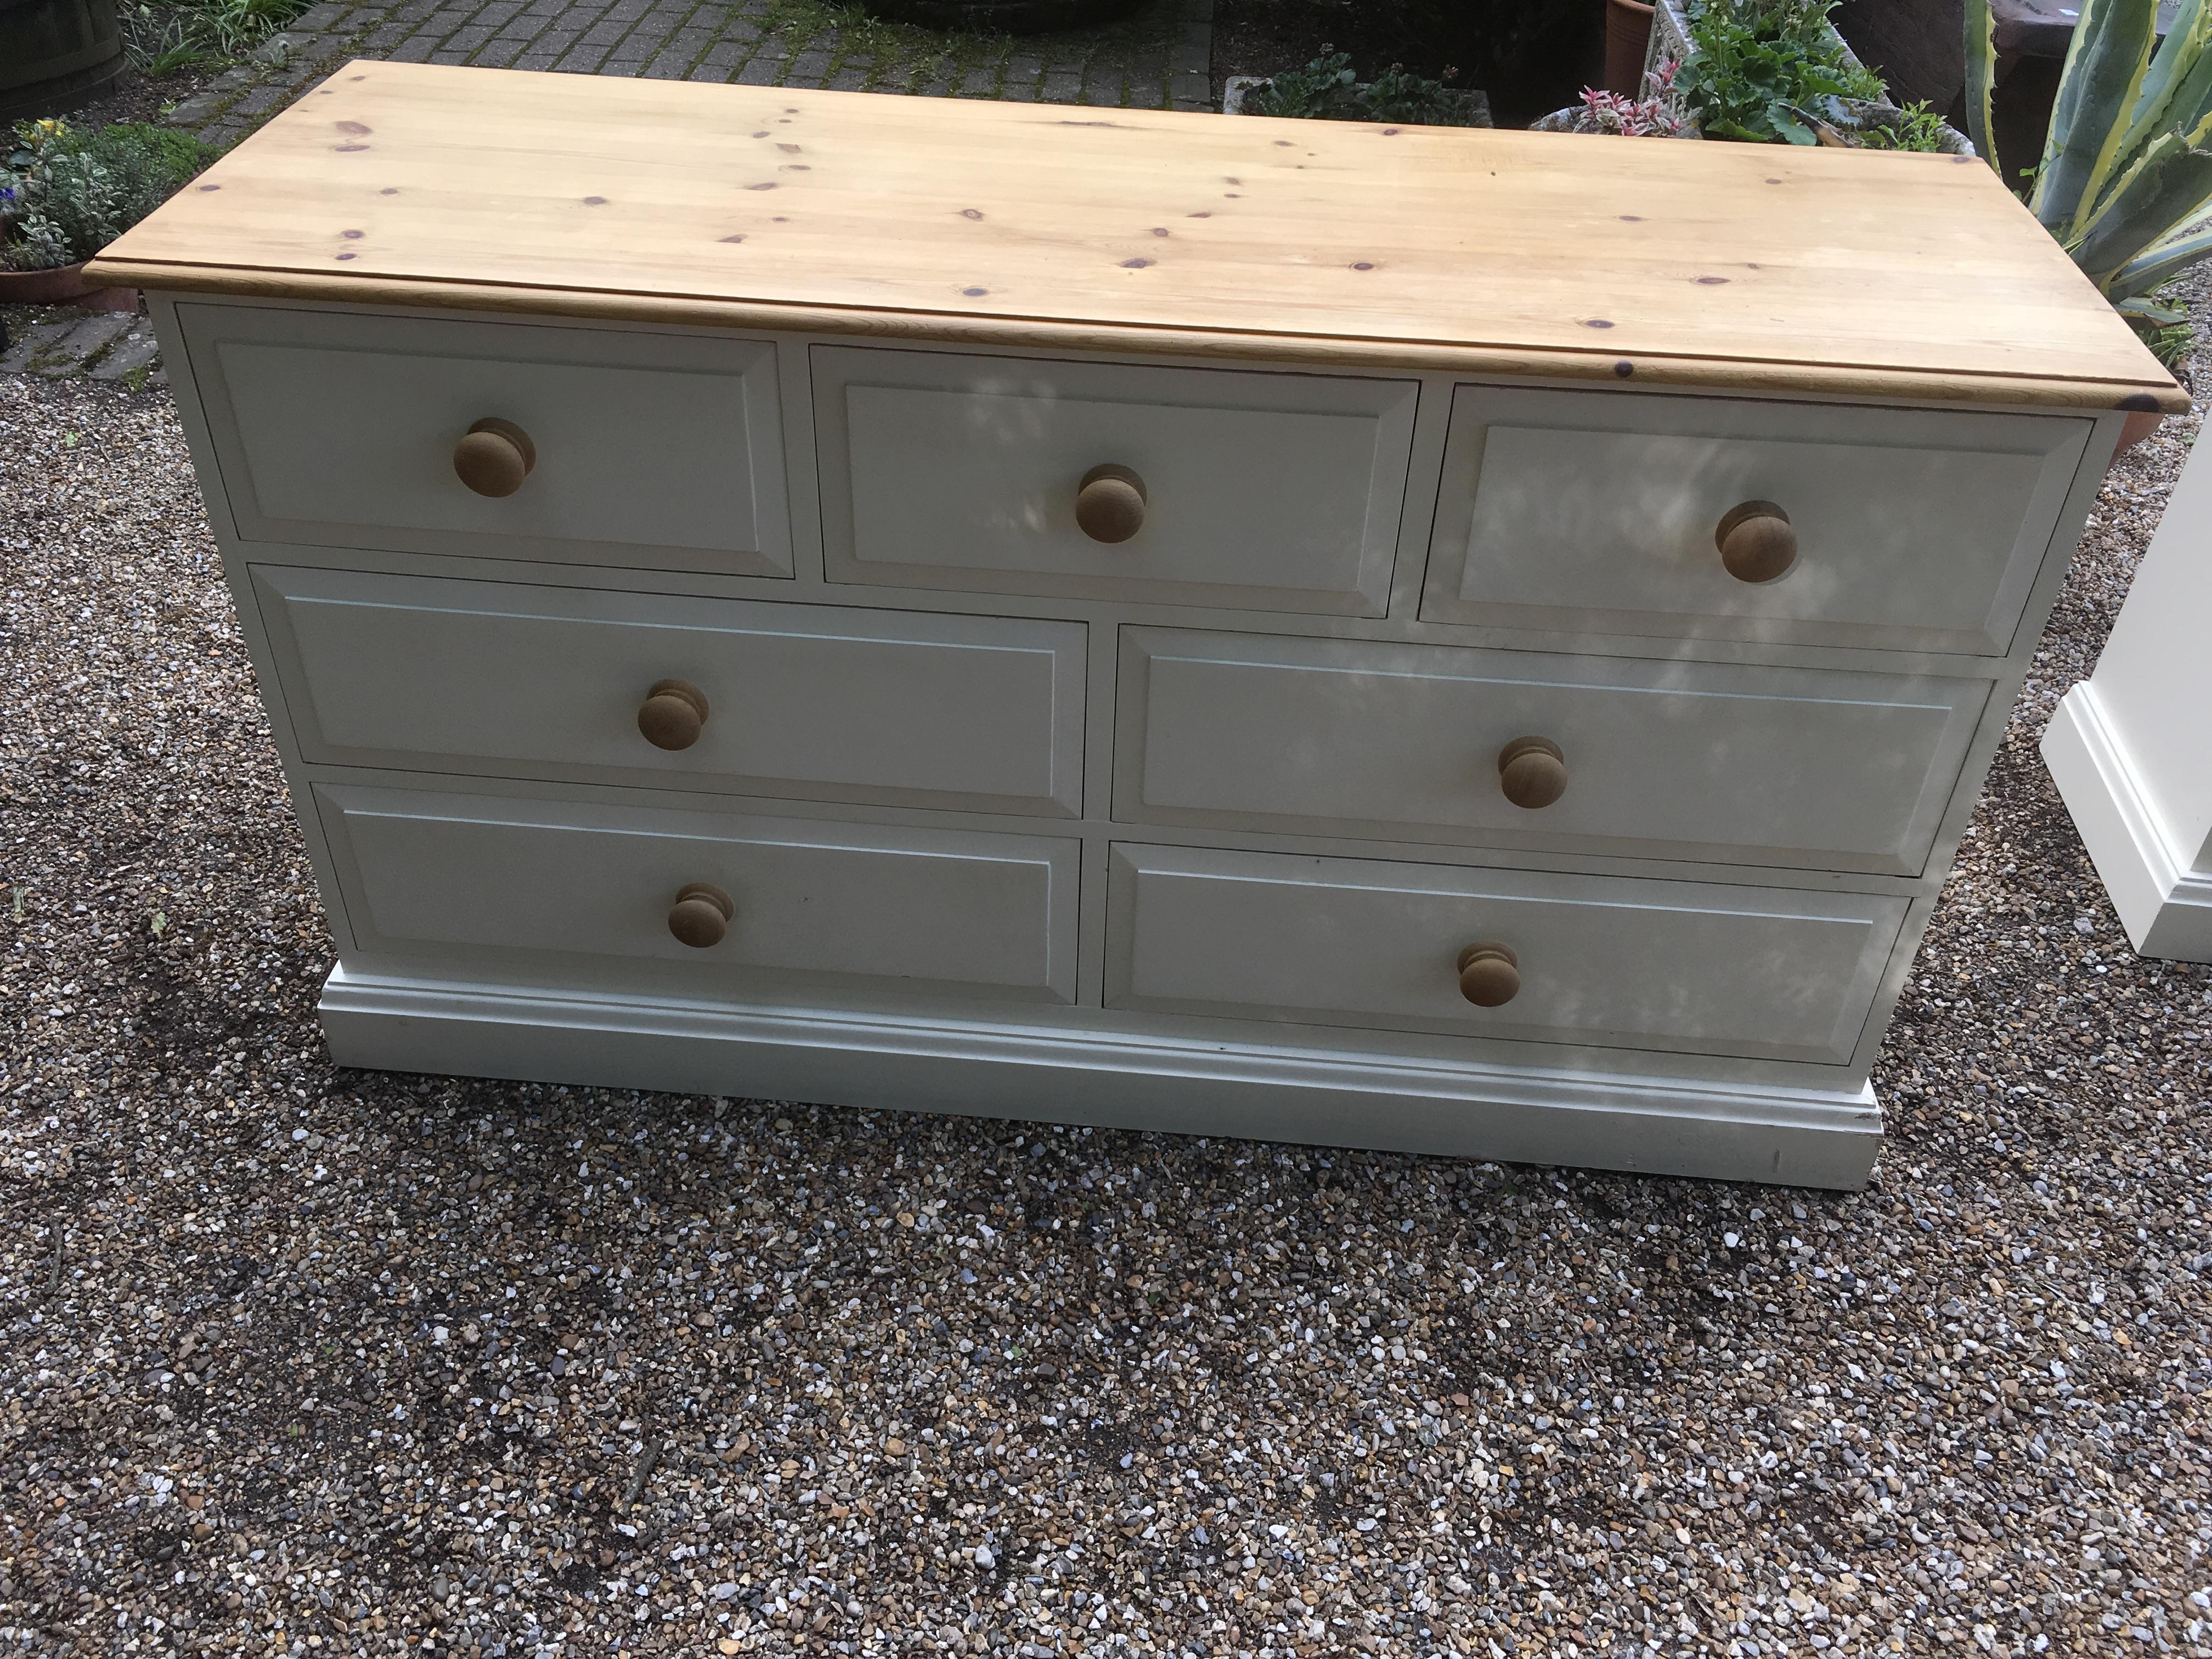 Solid Pine Painted 7 Draw Chest - As New Condition